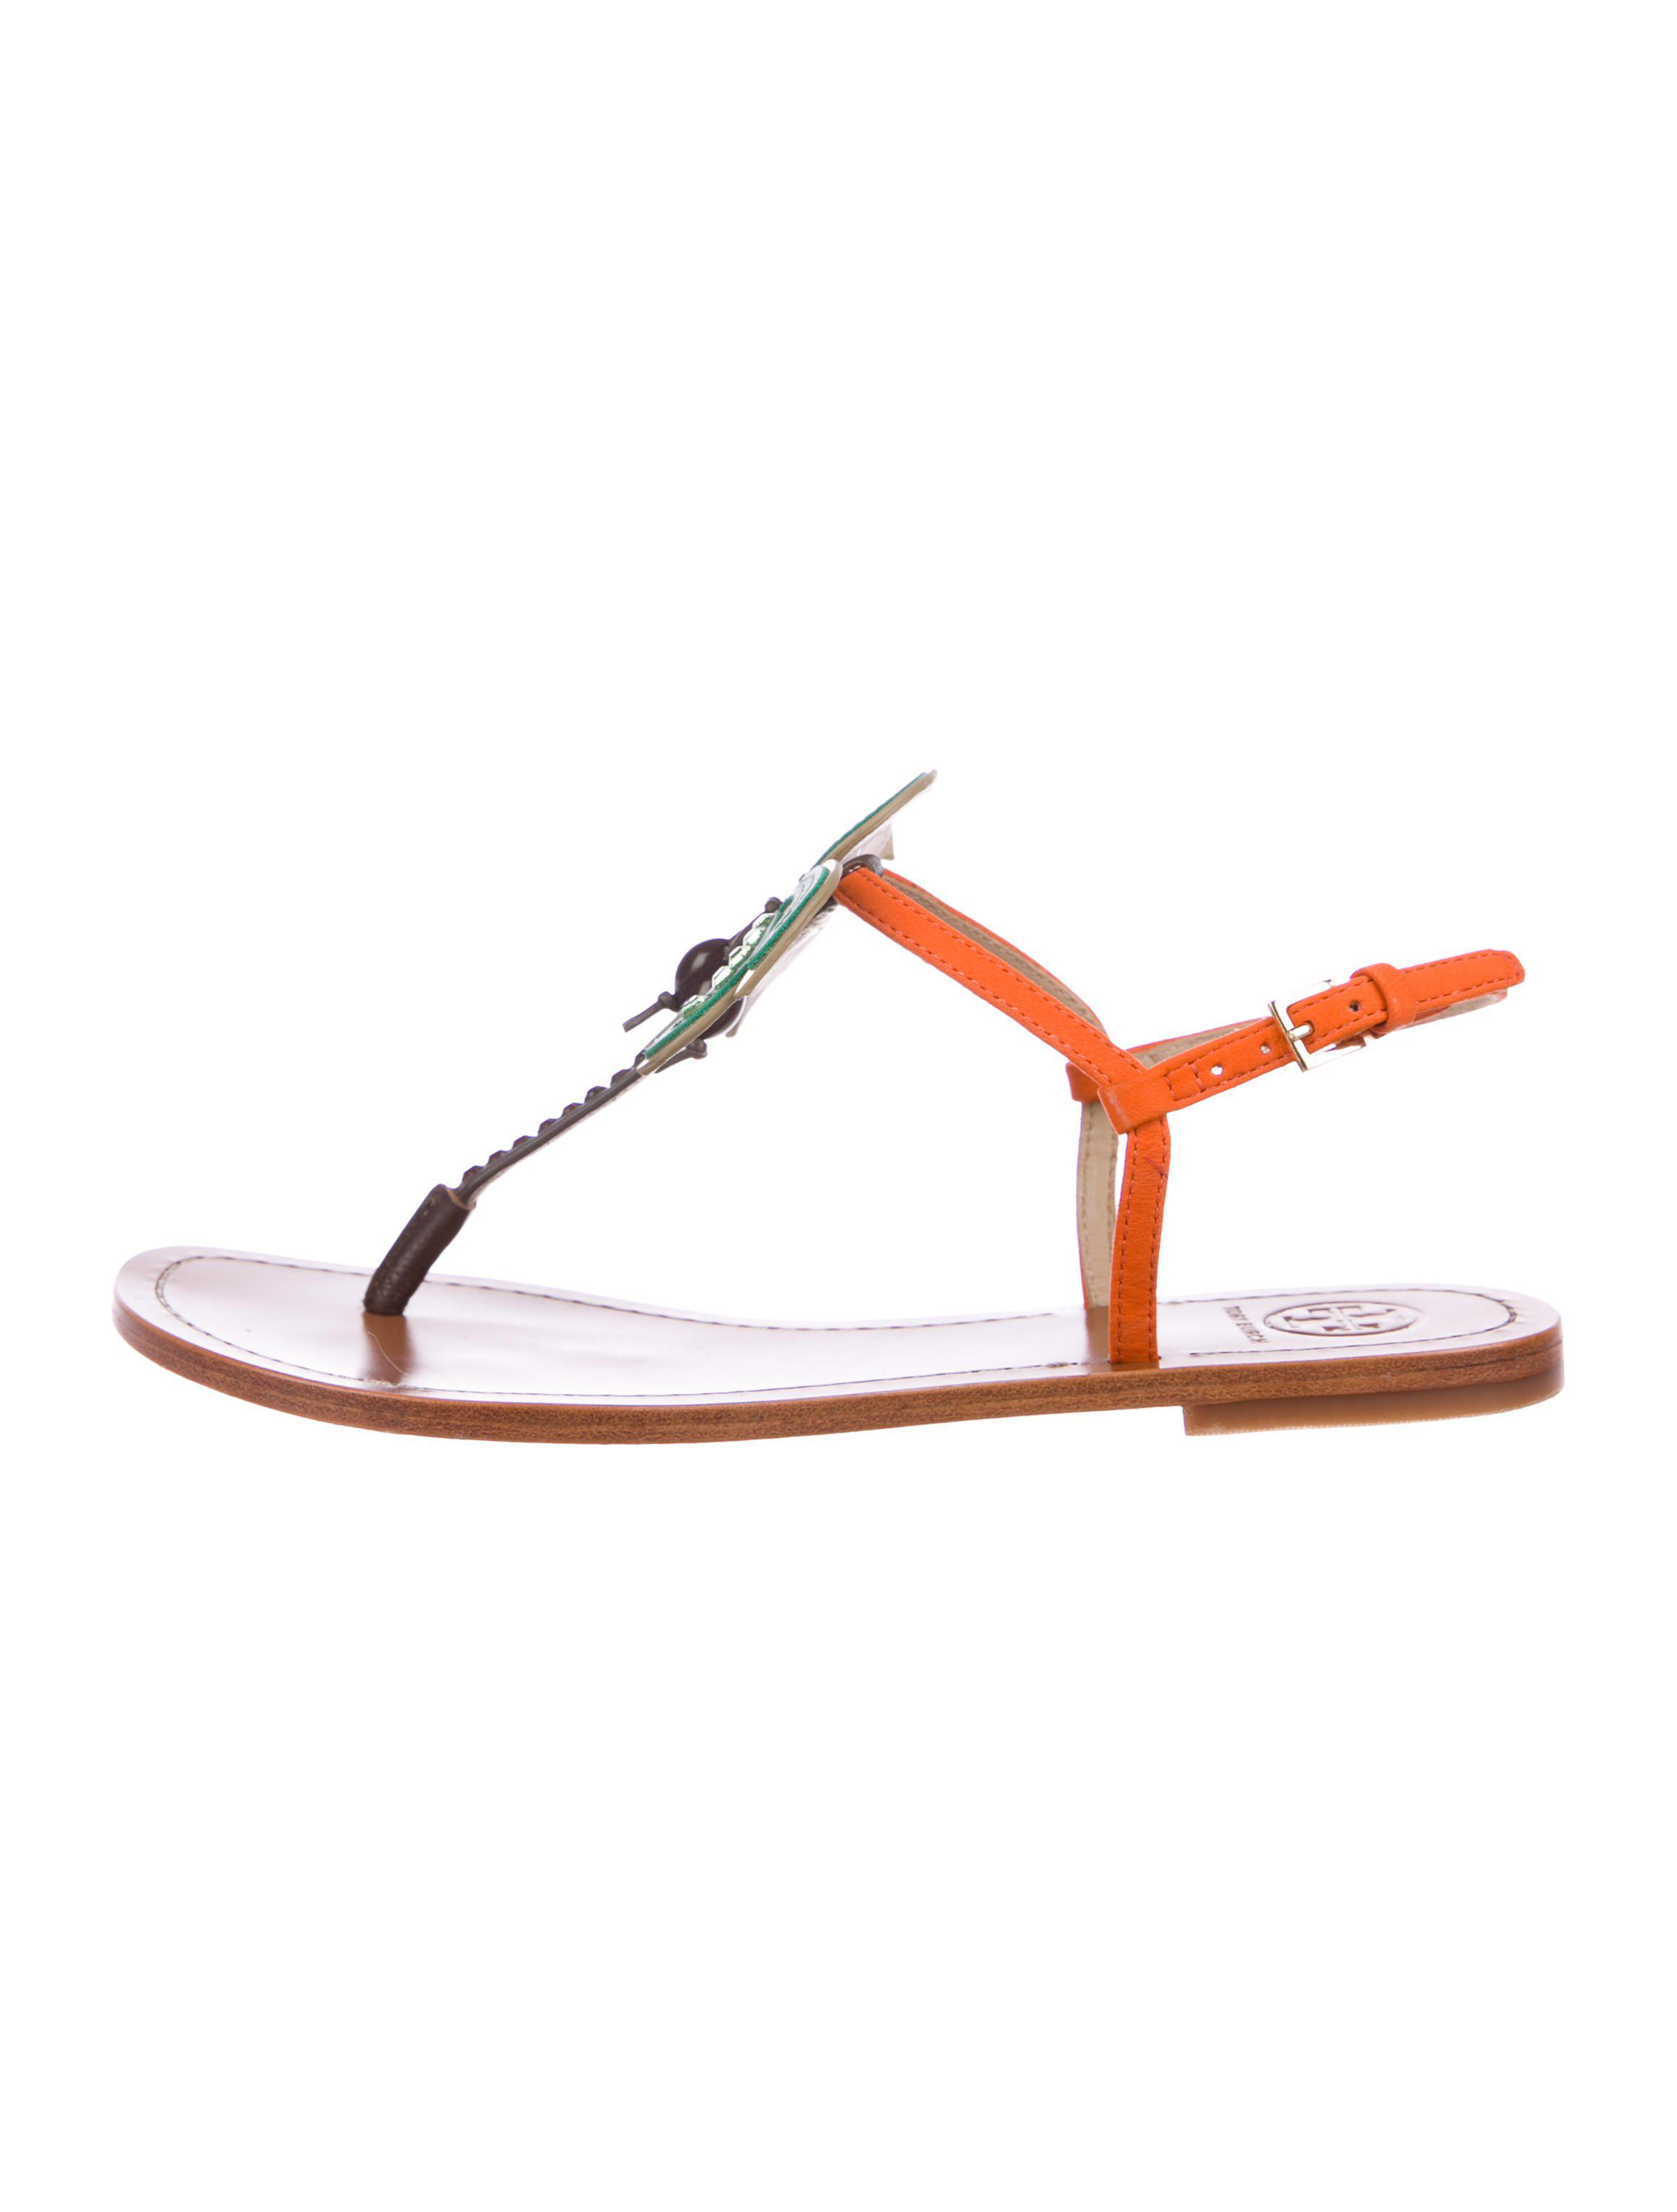 41da49bda113 Lyst - Tory Burch Embellished Thong Sandals in Brown